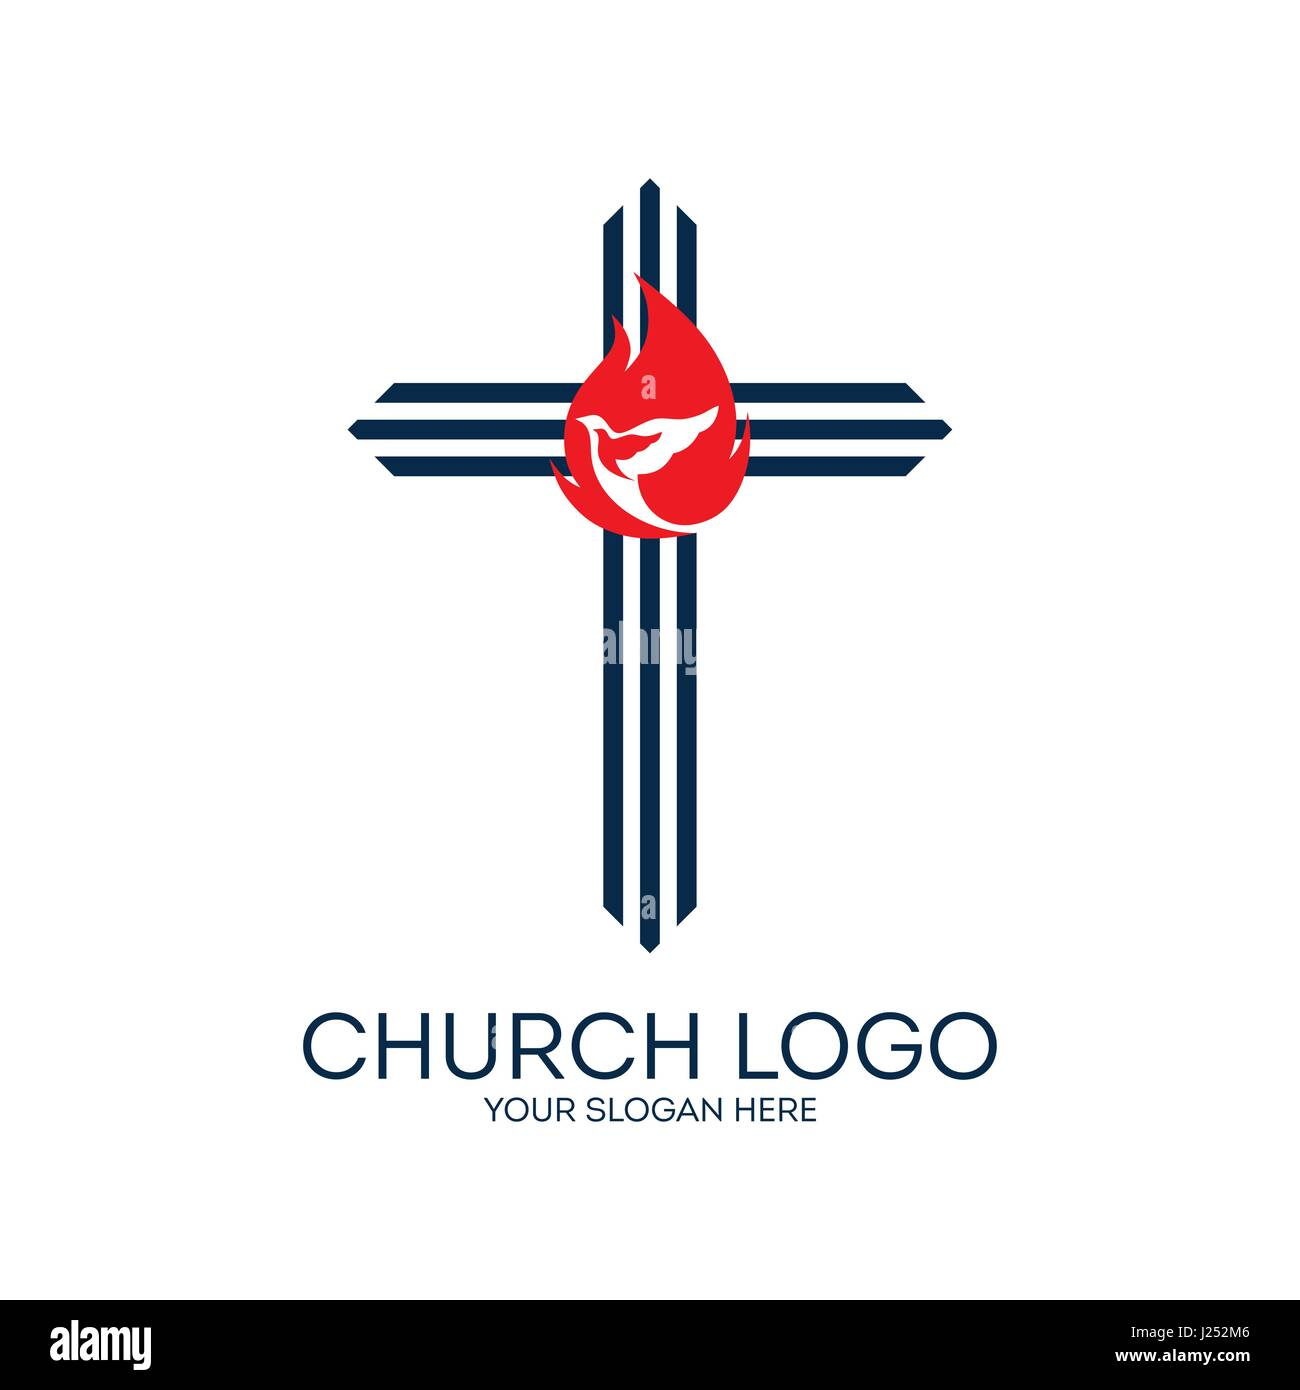 Church logo the cross of jesus the dove and the flame are symbols church logo the cross of jesus the dove and the flame are symbols of the spirit of god buycottarizona Gallery